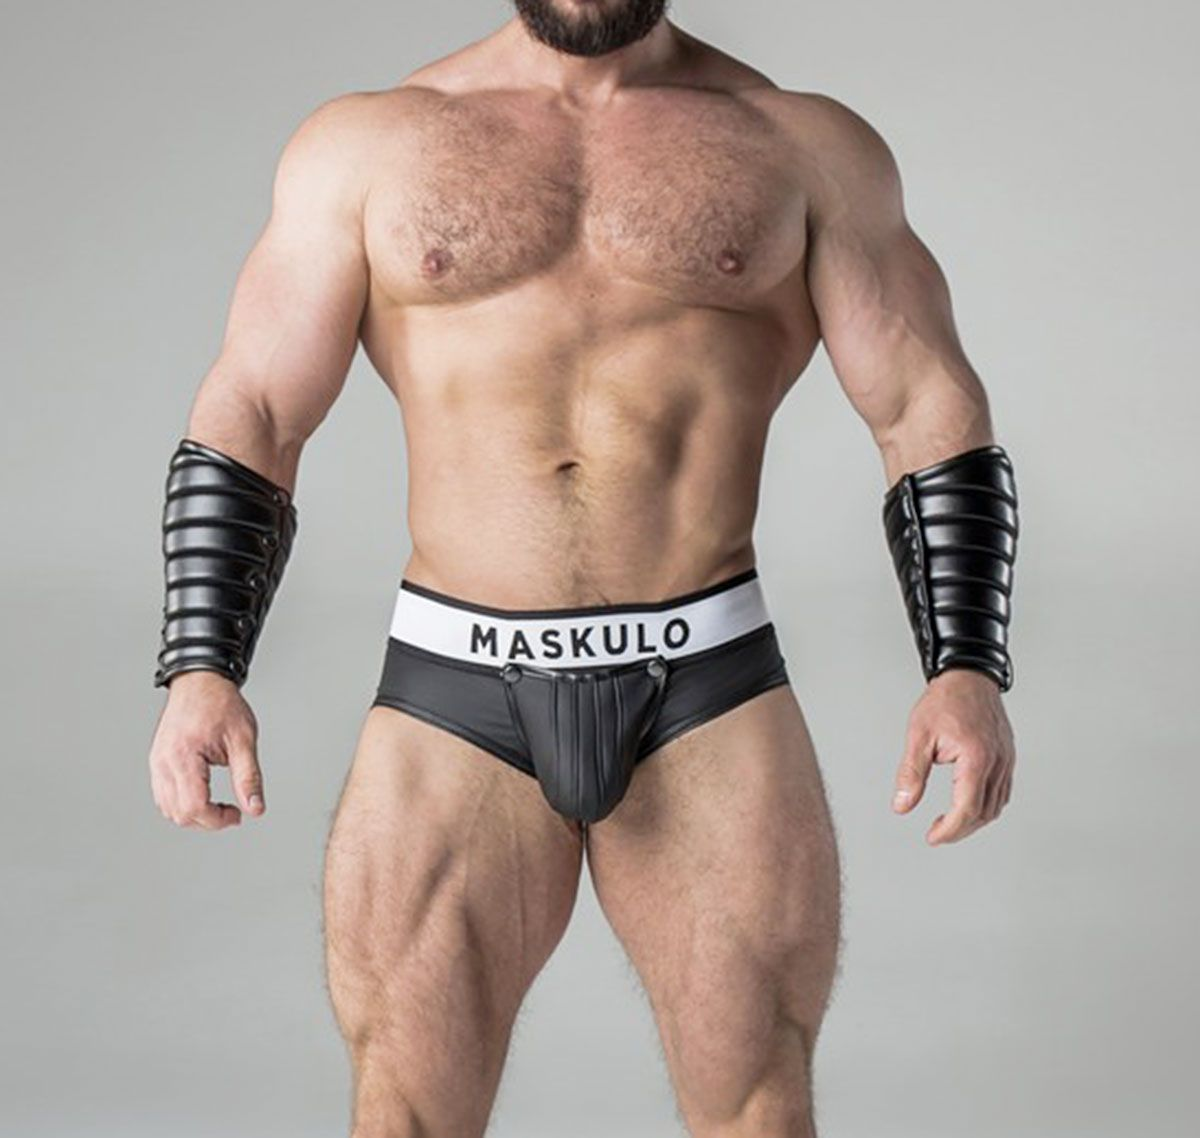 MASKULO Fetish Brief ARMORED. Rubber Look Backless BR10-90, black